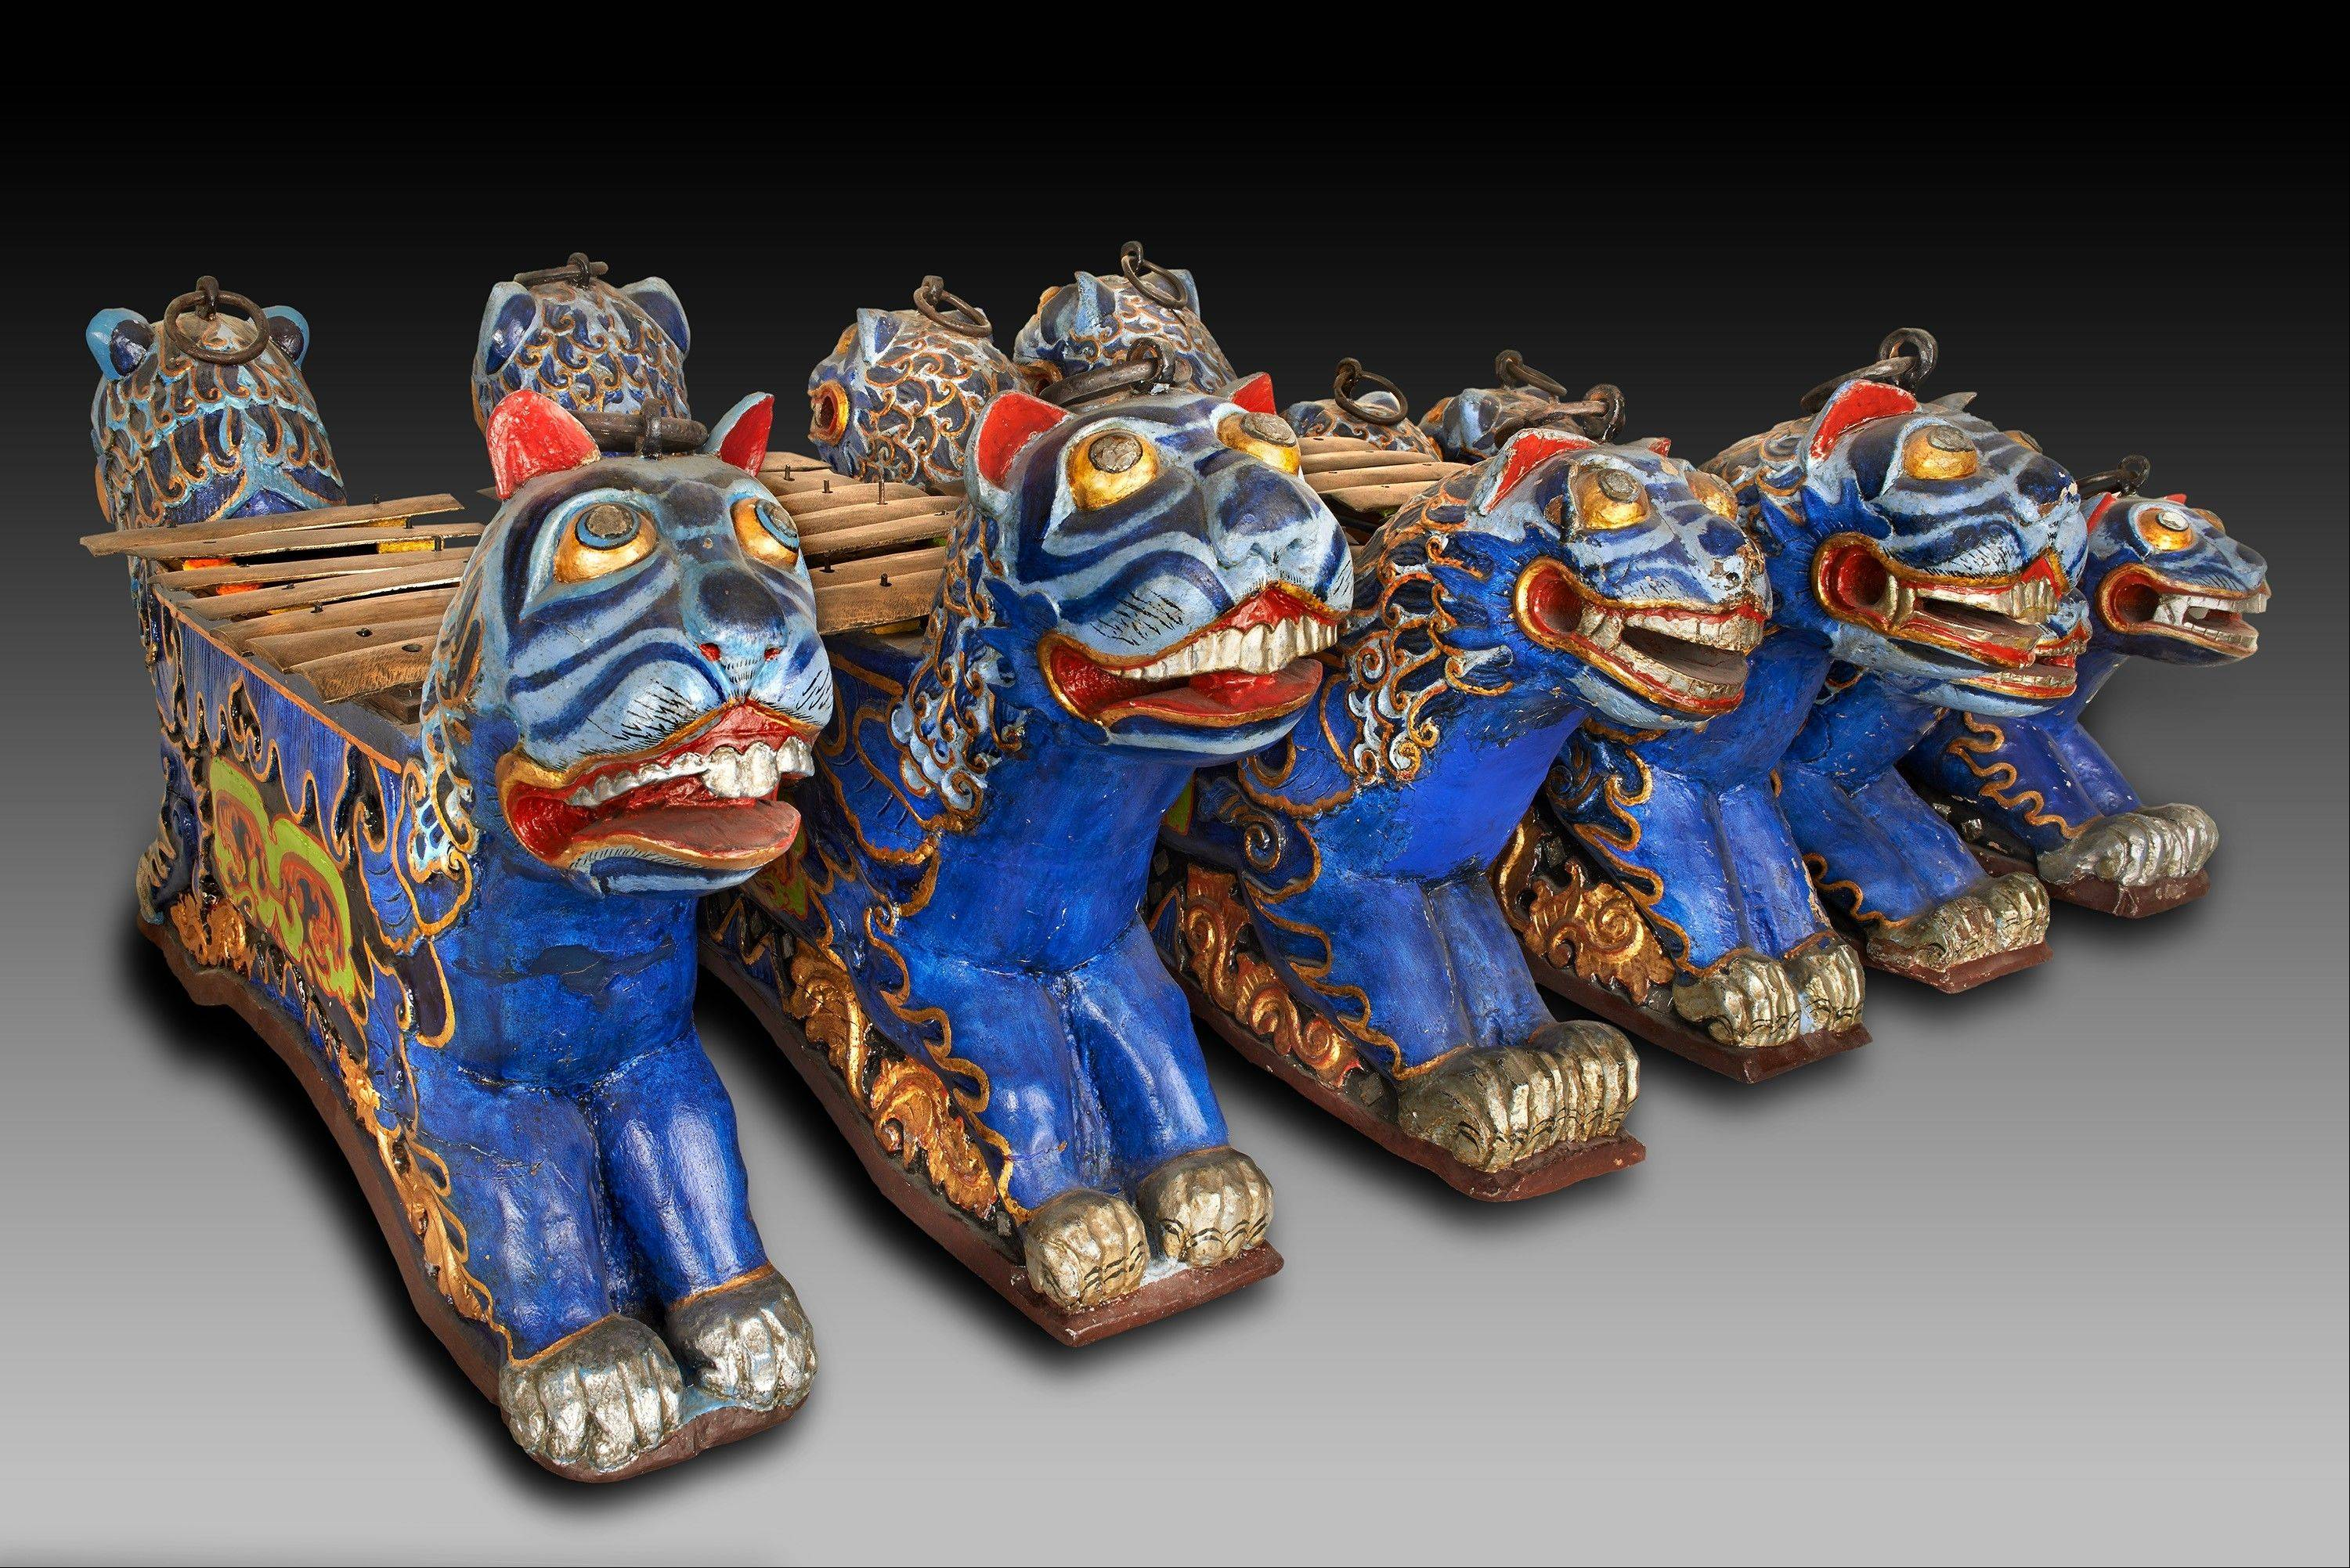 These are just a few of more than 40 pieces that compose a gamelan, a traditional Indonesian instrument that was played at the 1893 World's Fair; it is one of the Field Museum's most treasured artifacts. These lions are part of the xylophone portion.